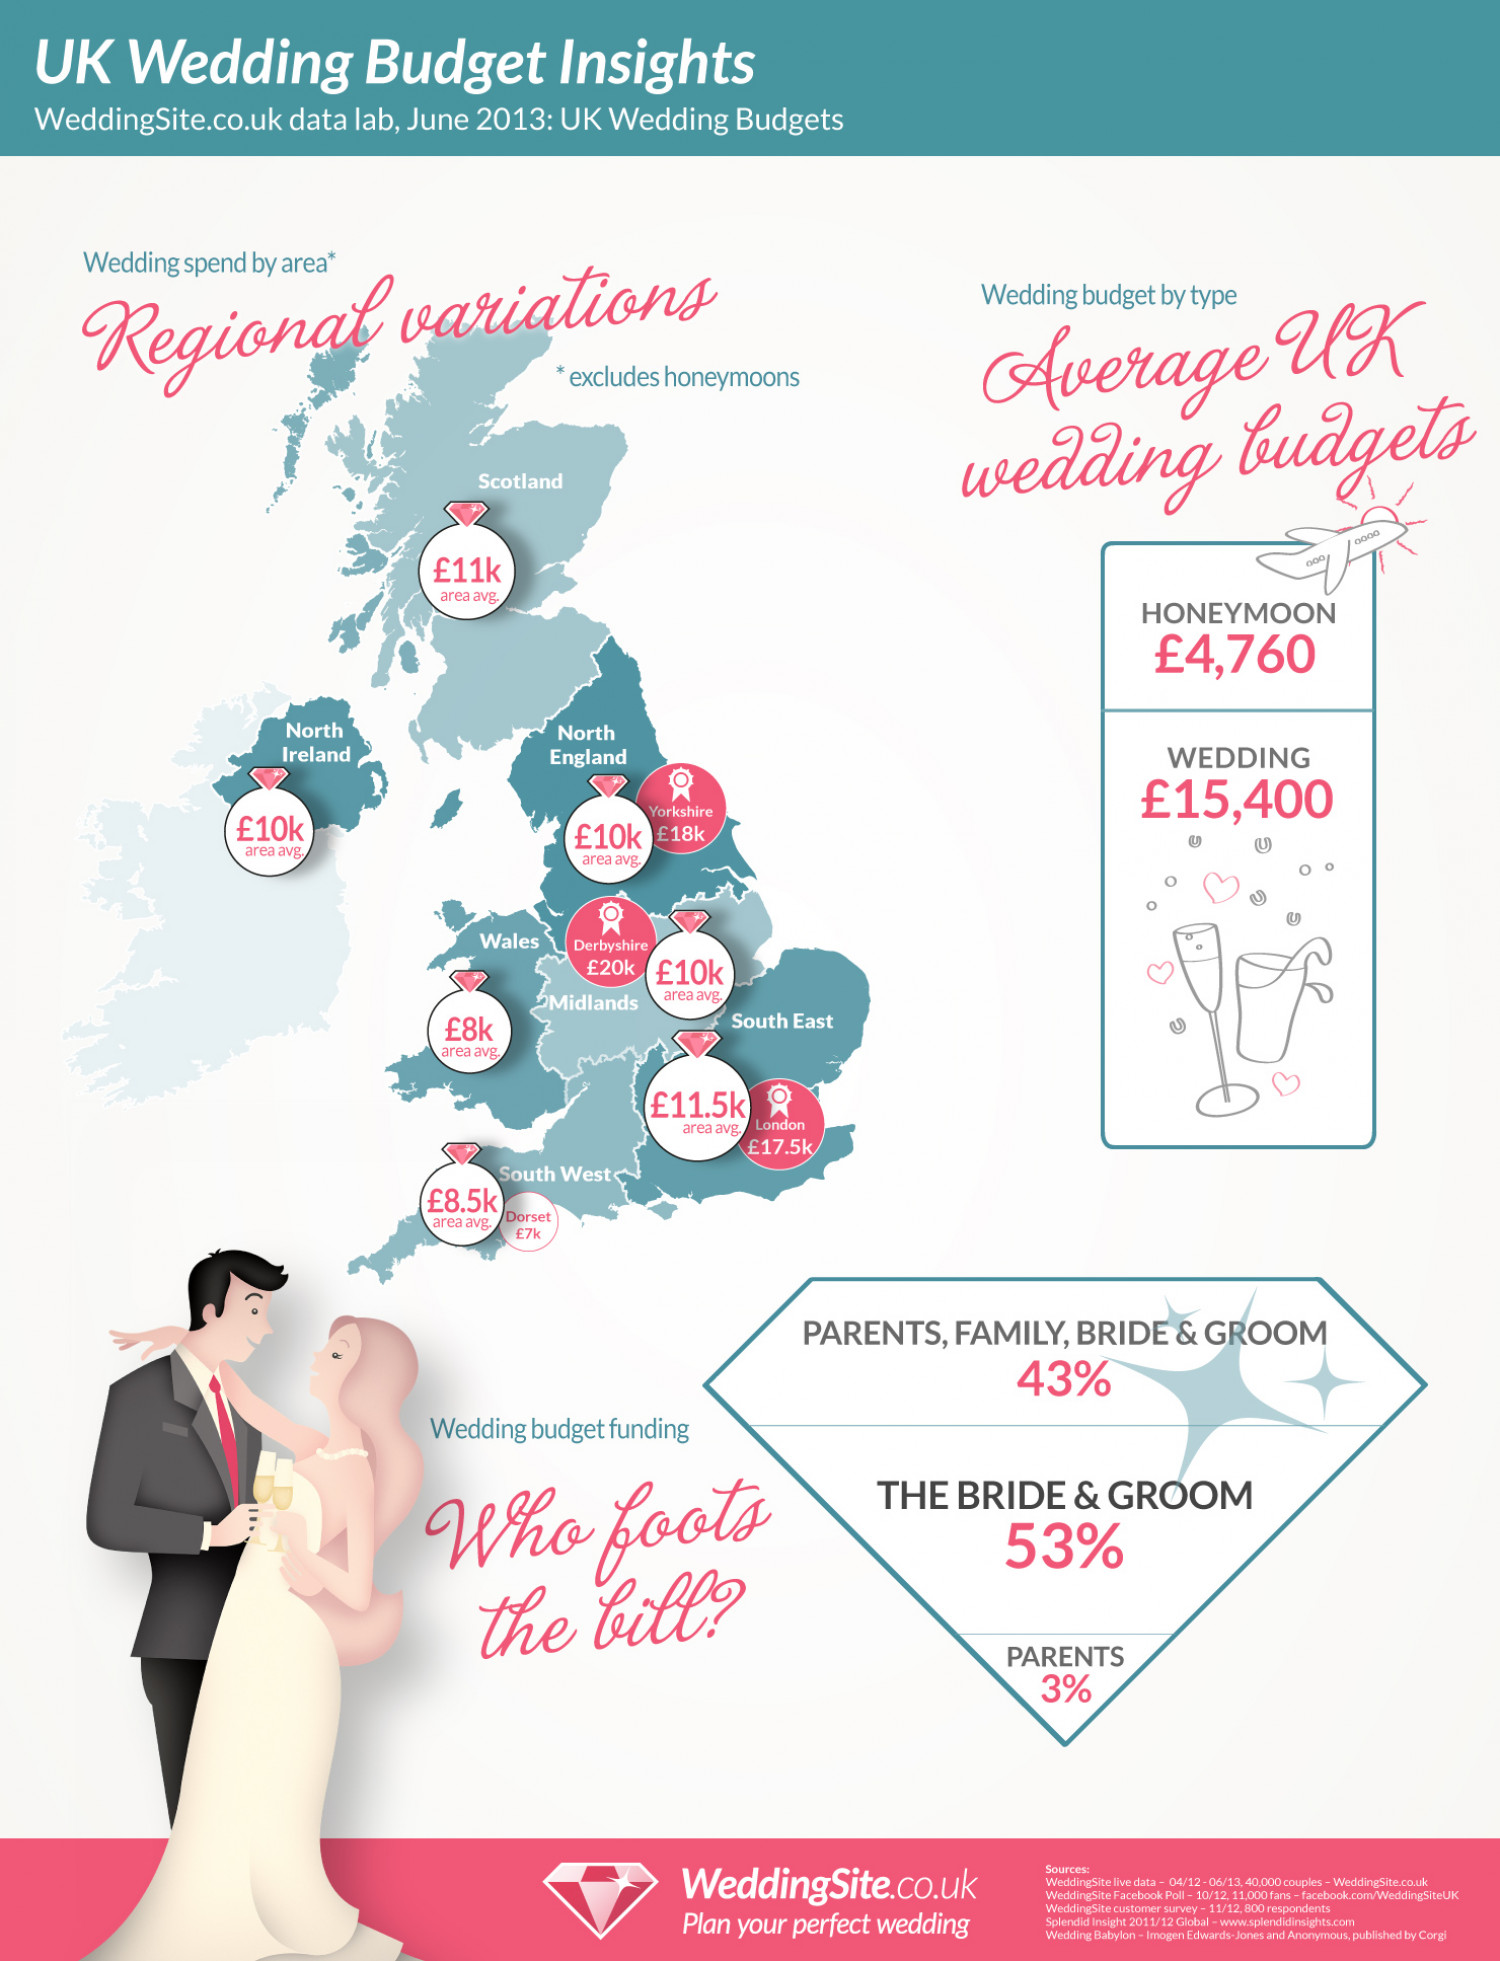 UK Wedding Budget Insights Infographic